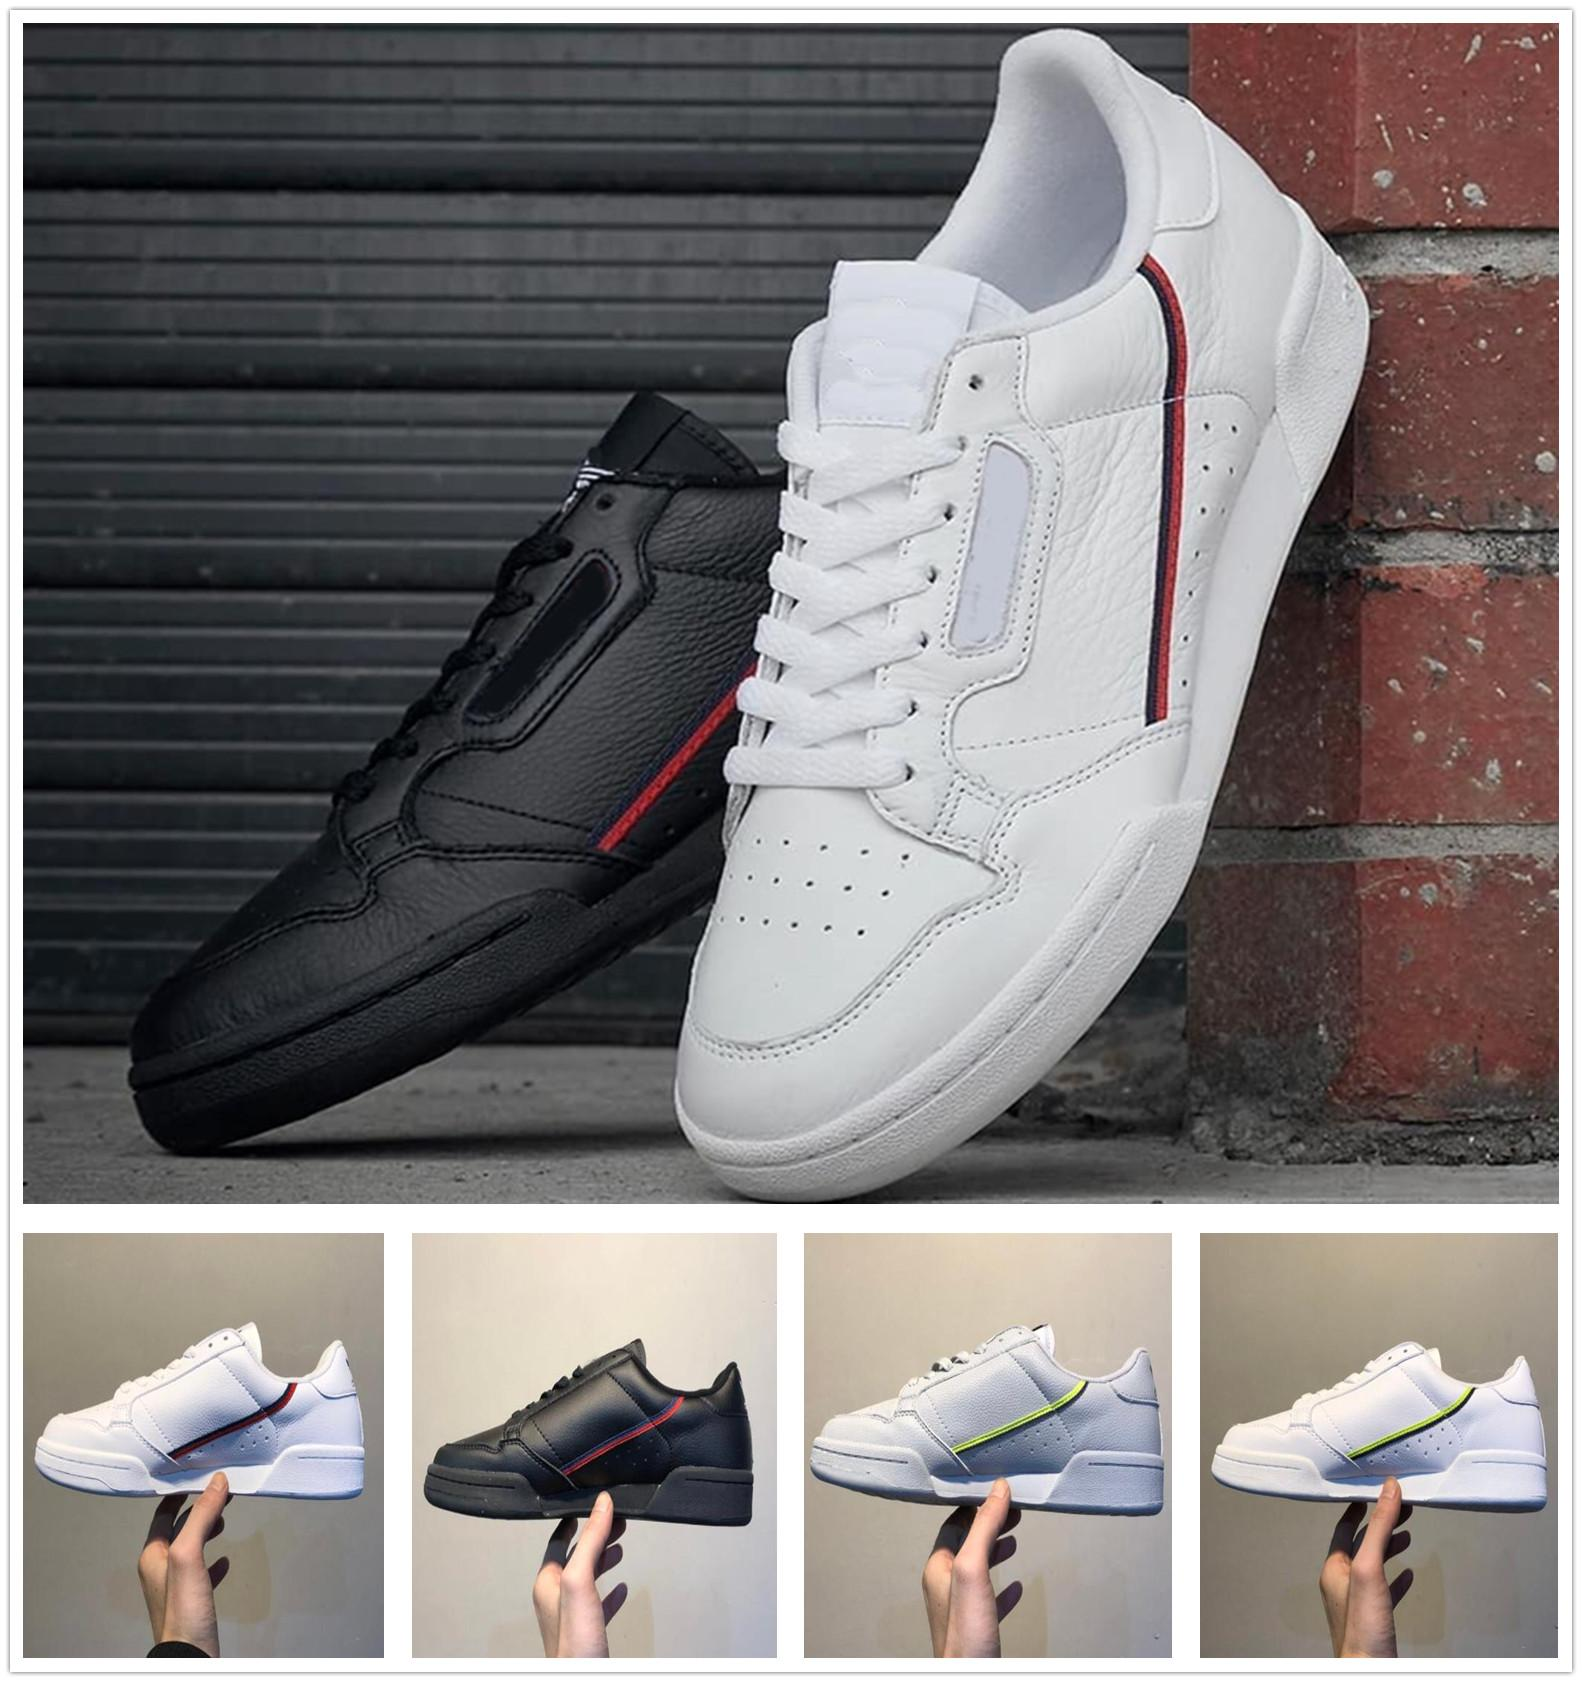 6c005a24ff3f8 2018 Antique AD Continental 80 Rascal Leather X Kanye West Casual Shoe White  OG Core Black Aero Blue Grey Pink Men Fashion Sneakers 36 45 Shoe Shops  Brown ...